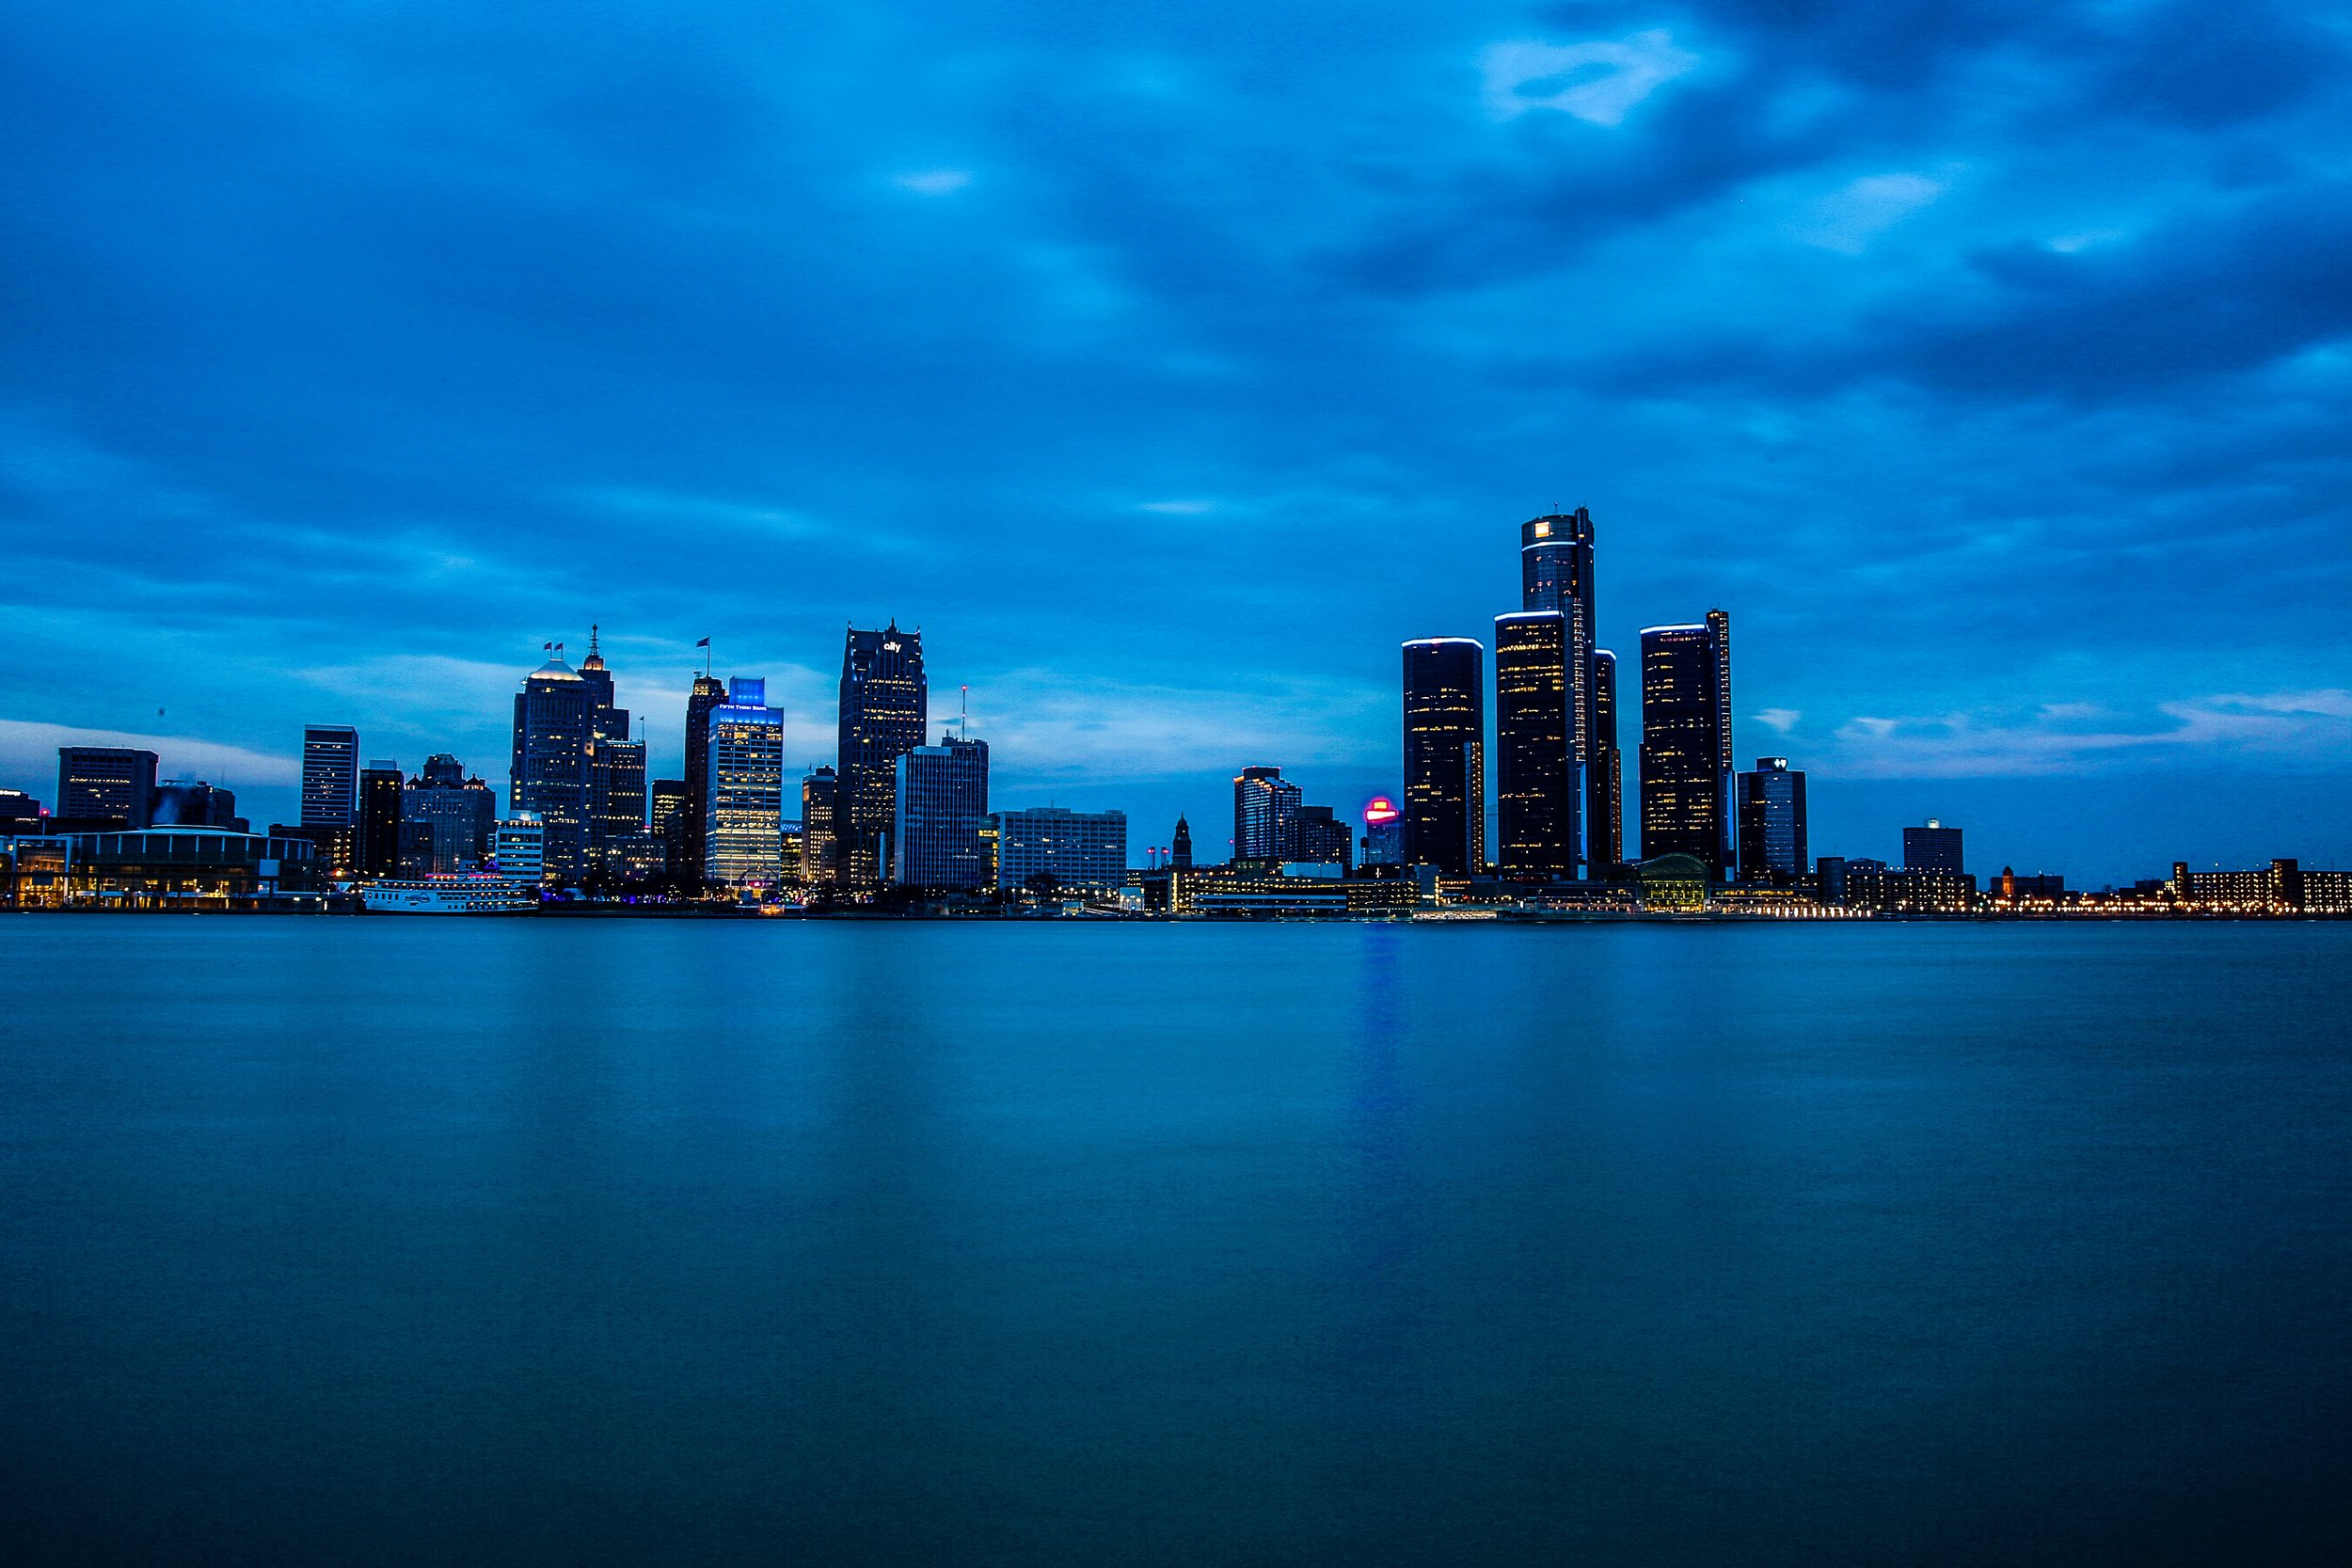 Our Hometown - Shoestring Consulting is honored to consider Detroit home with respect for all of its neighborhoods and communities.